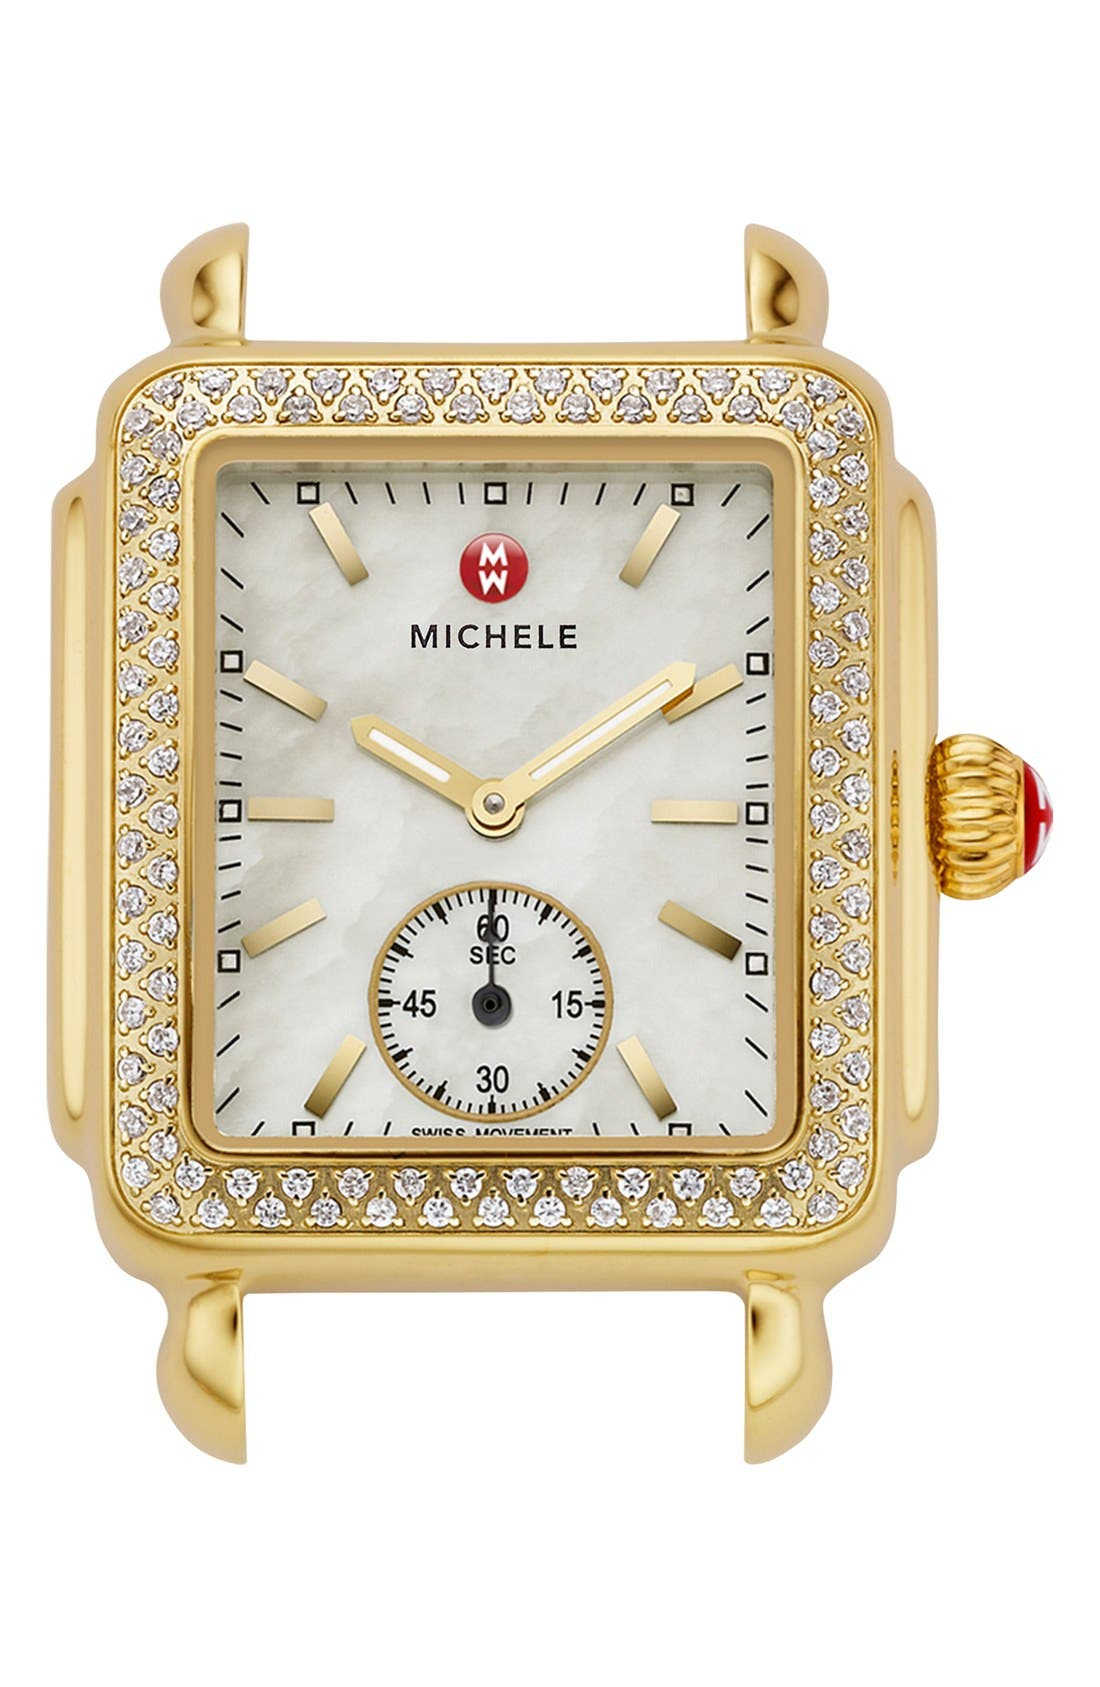 MICHELE Deco 16 Diamond Gold Plated Watch Head,